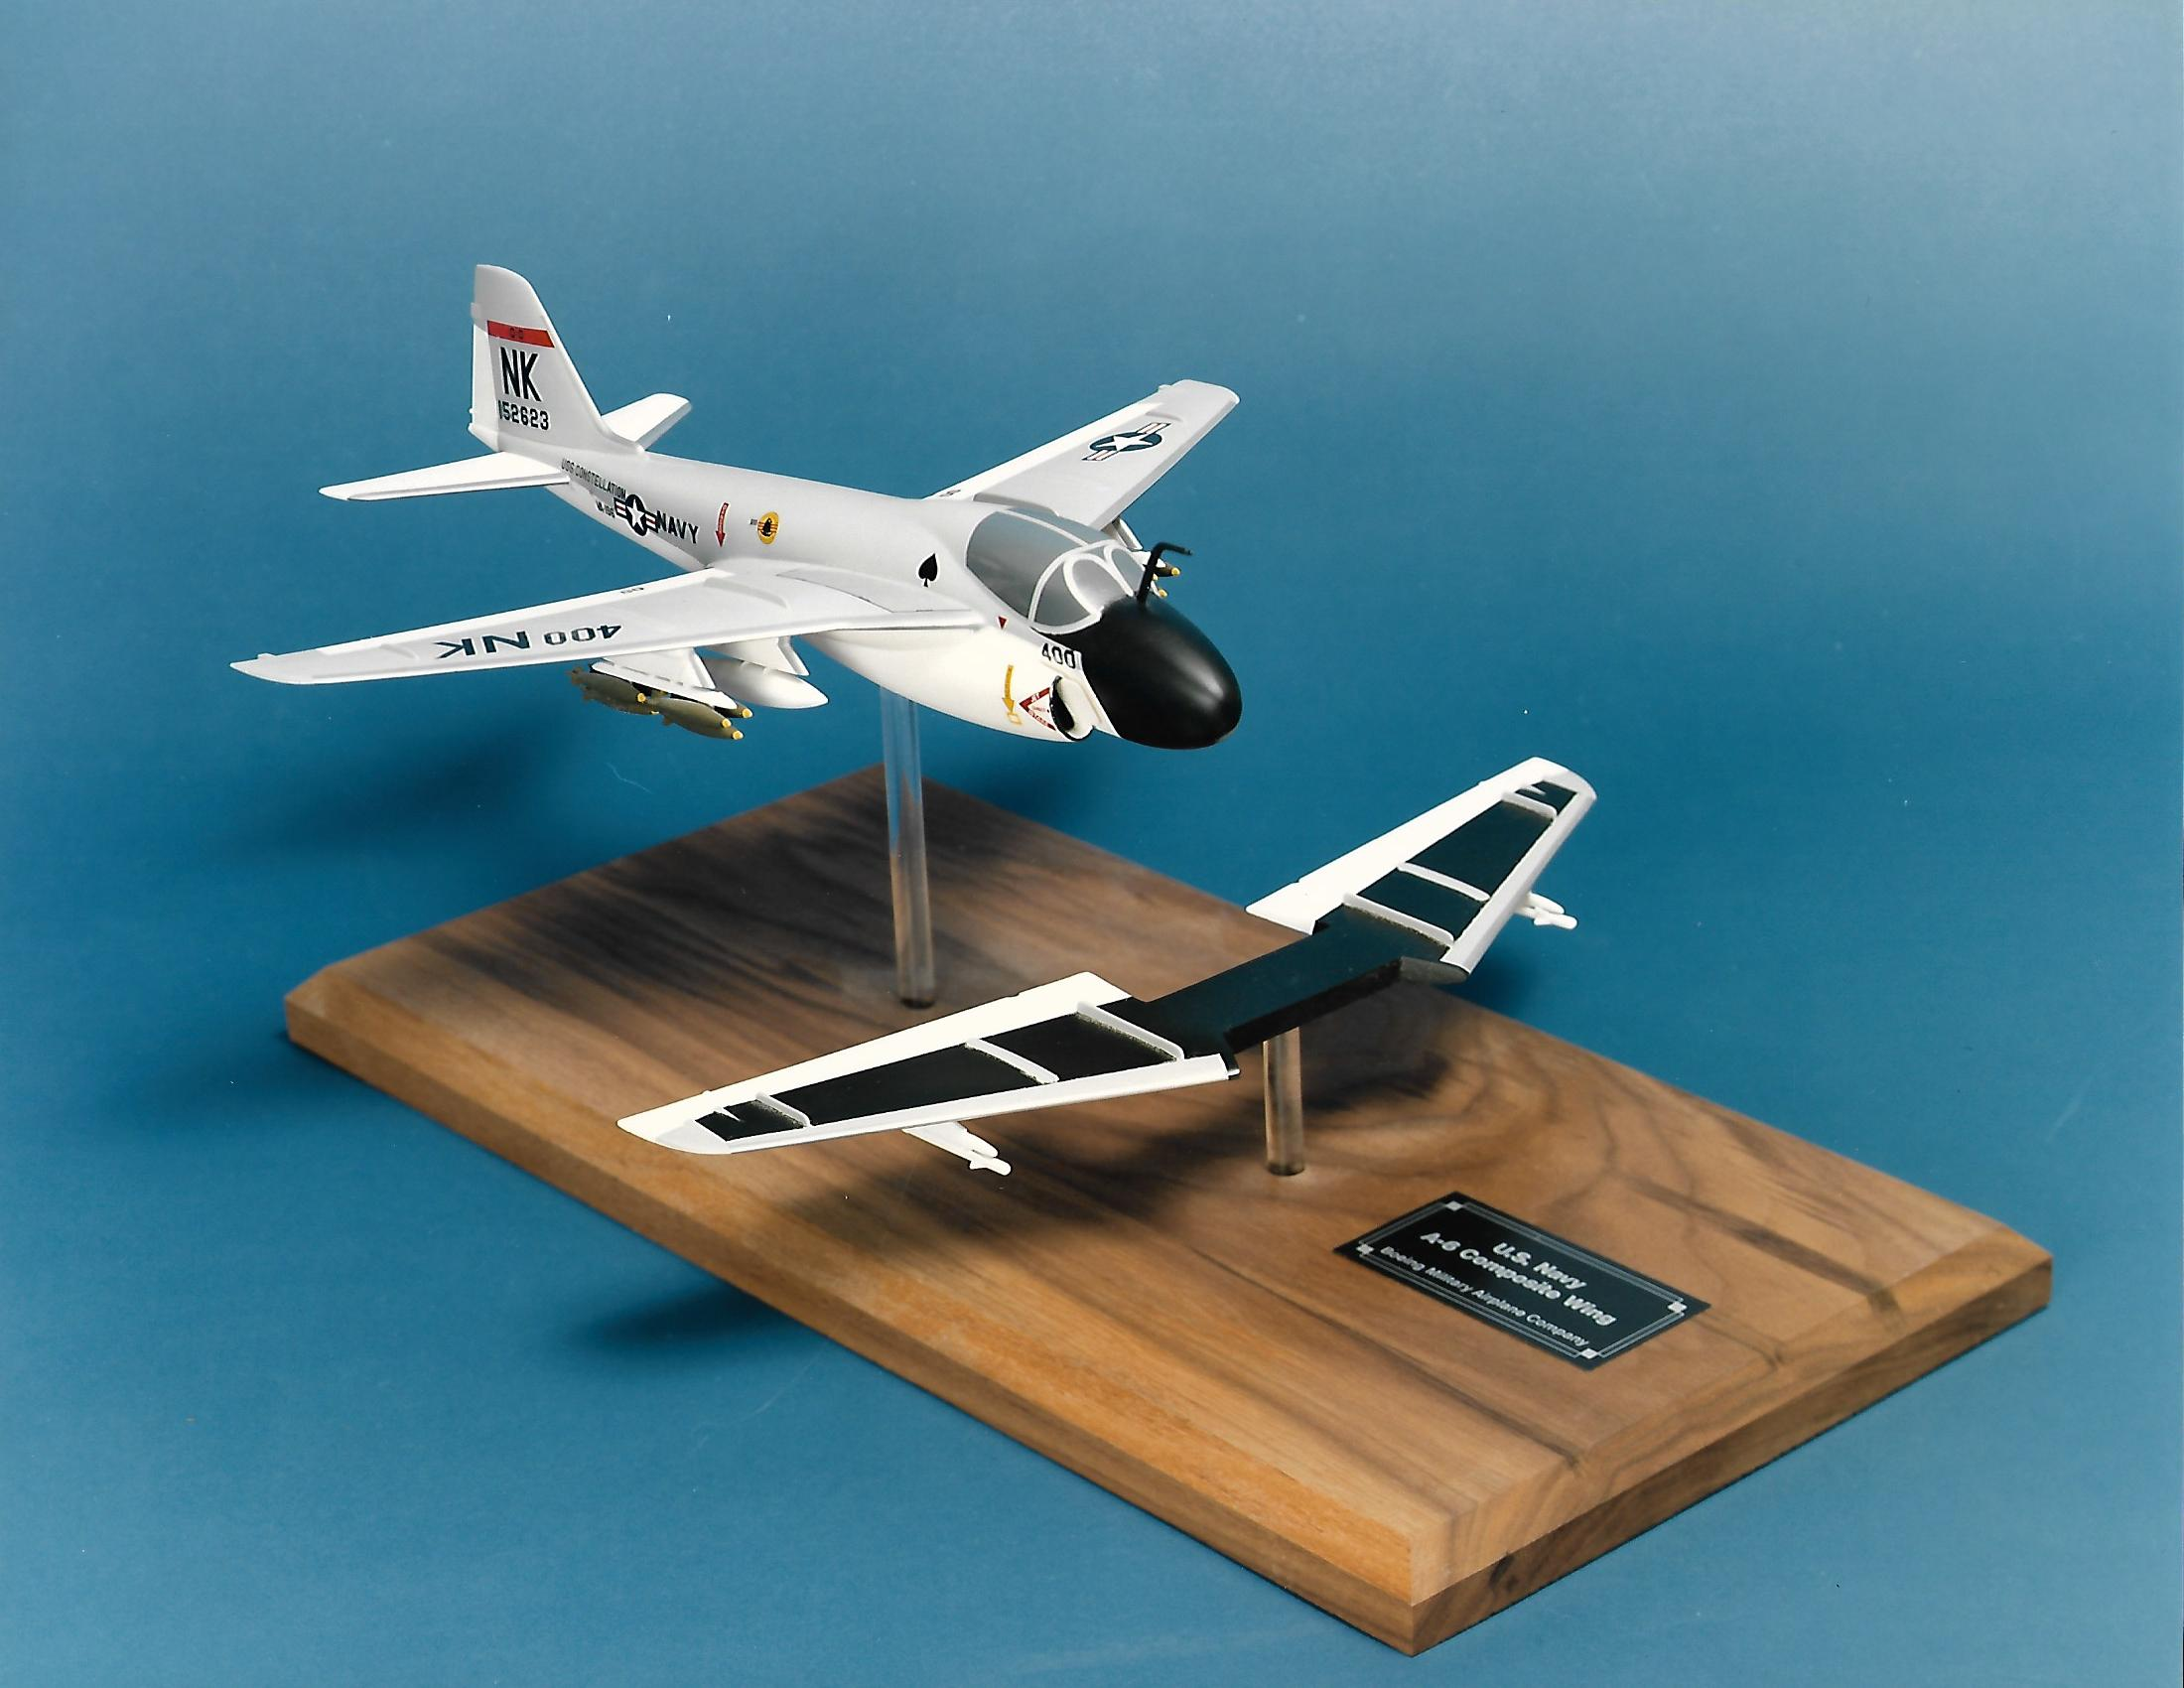 Grumman A-6 factory model